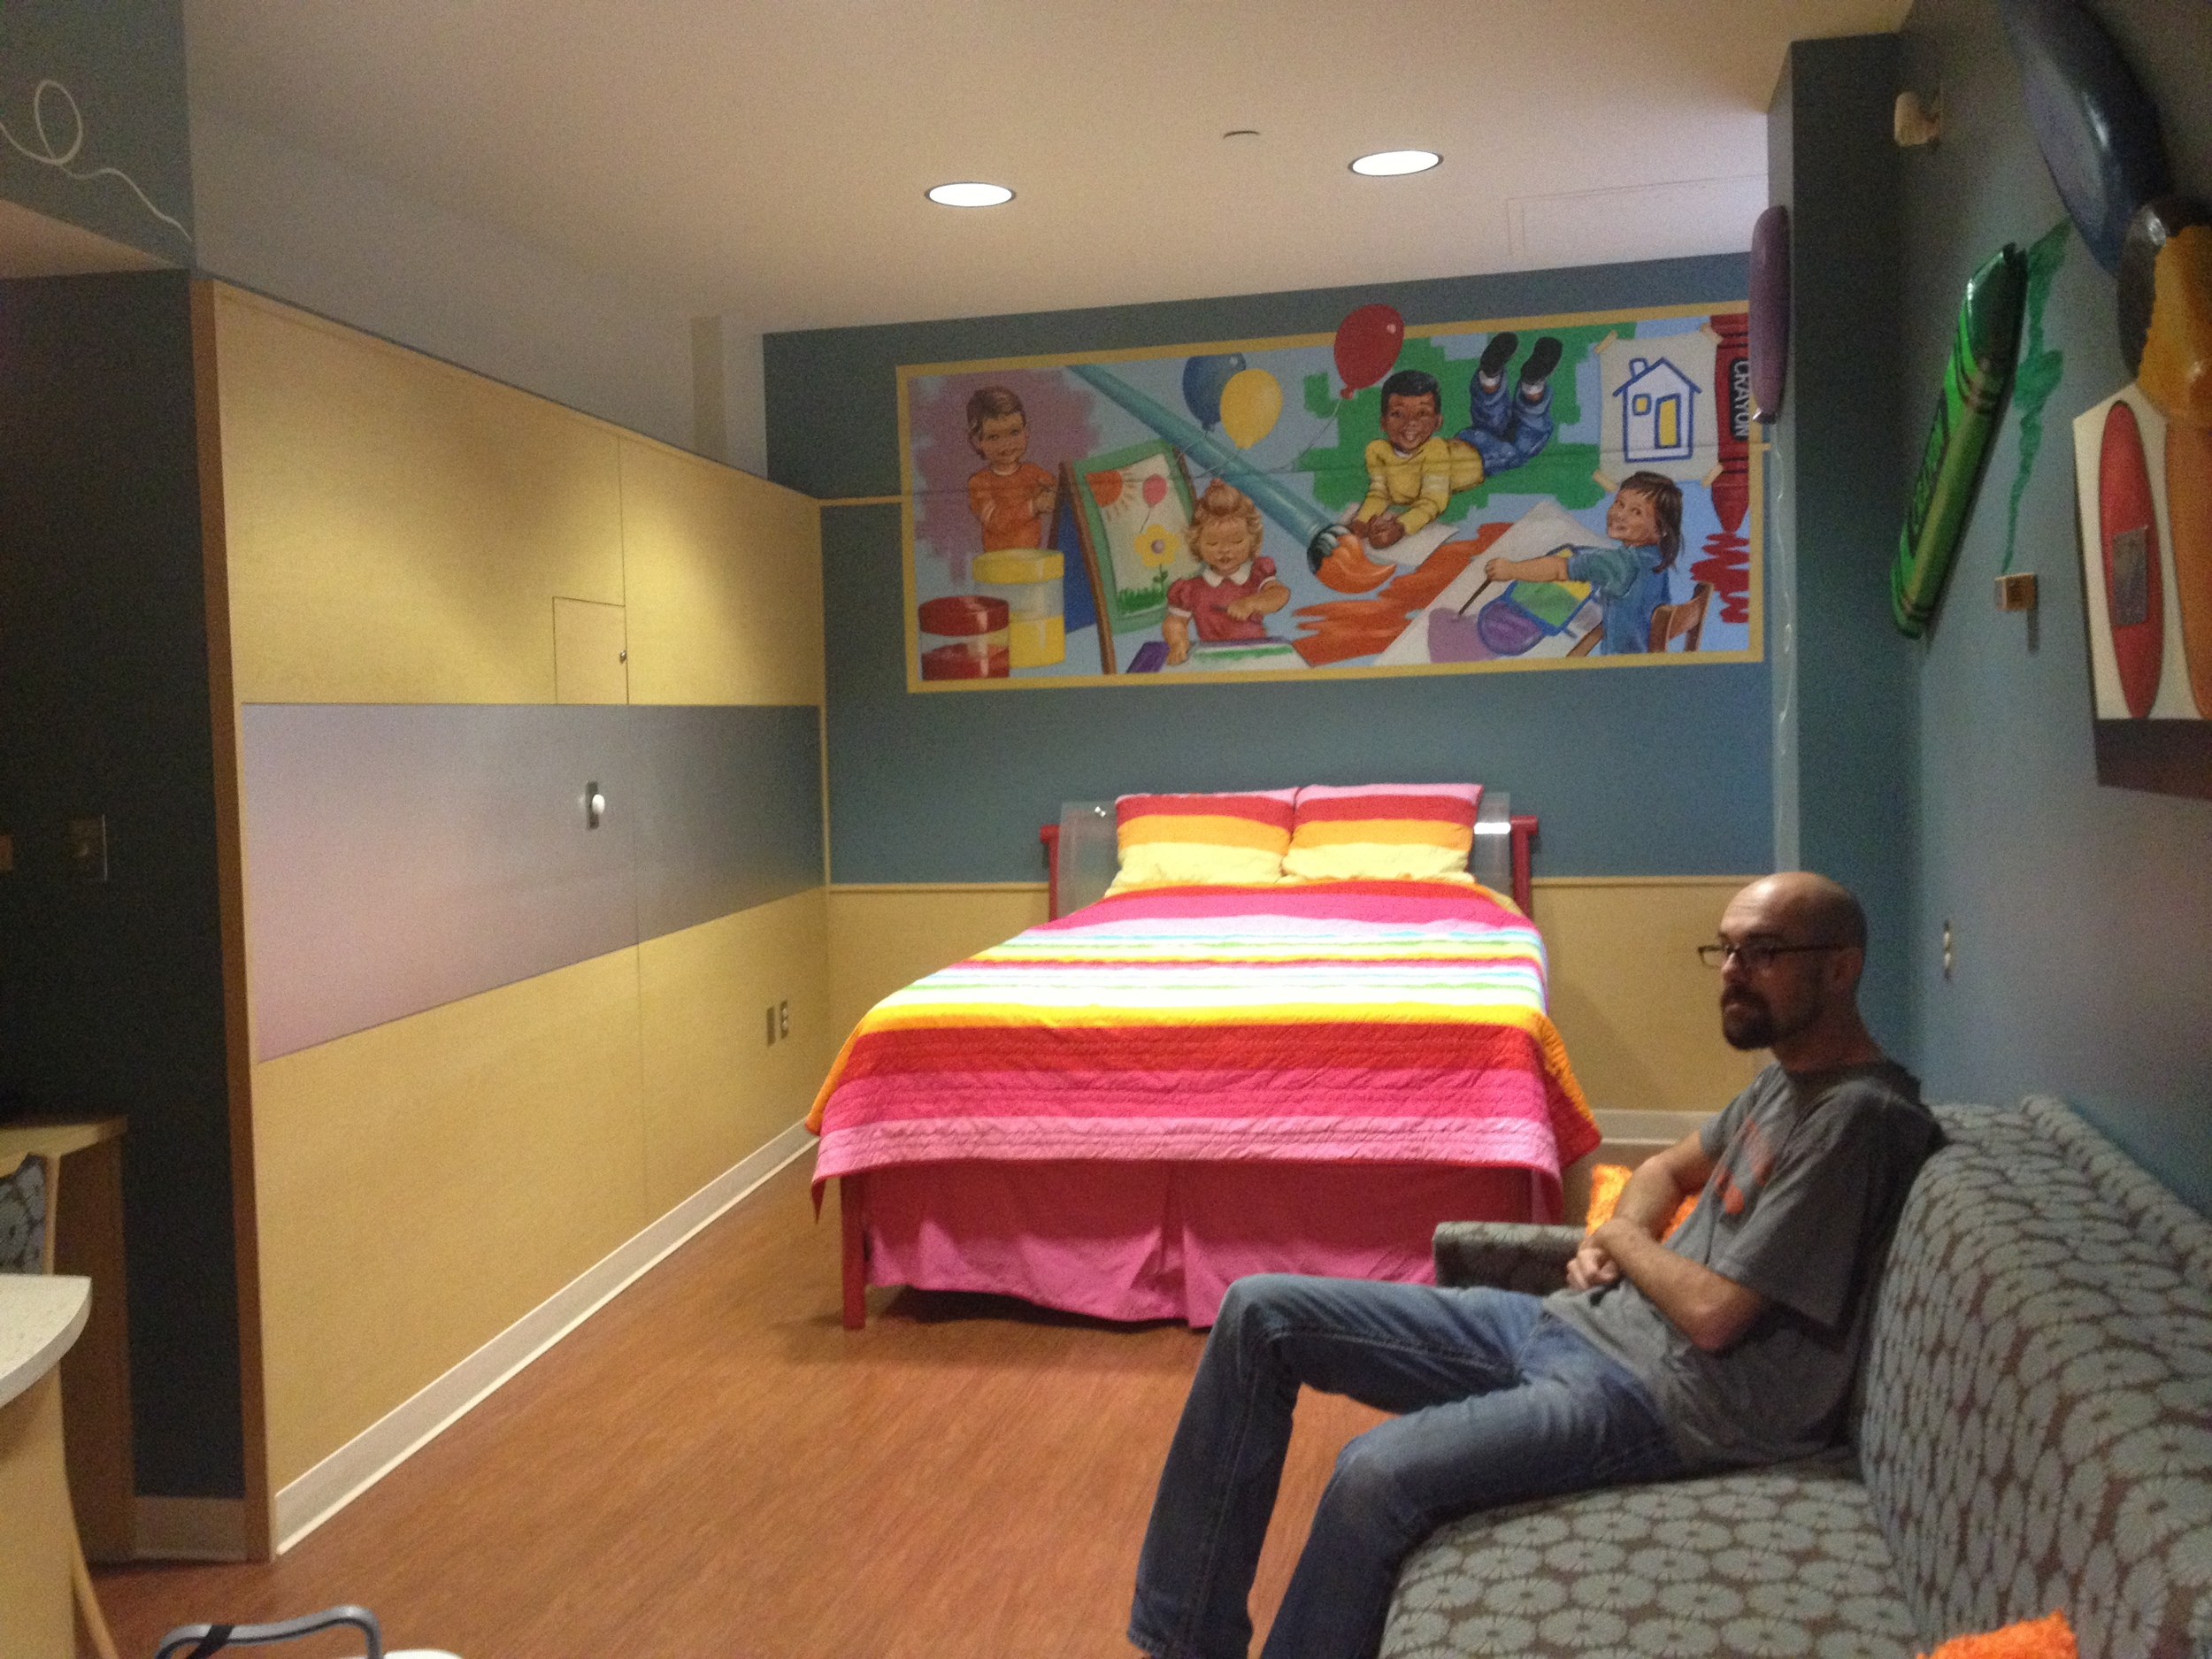 Ronald McDonald House provides us with a sleeping room for three nights! FREE of charge. And it's two floors down from Ms. A